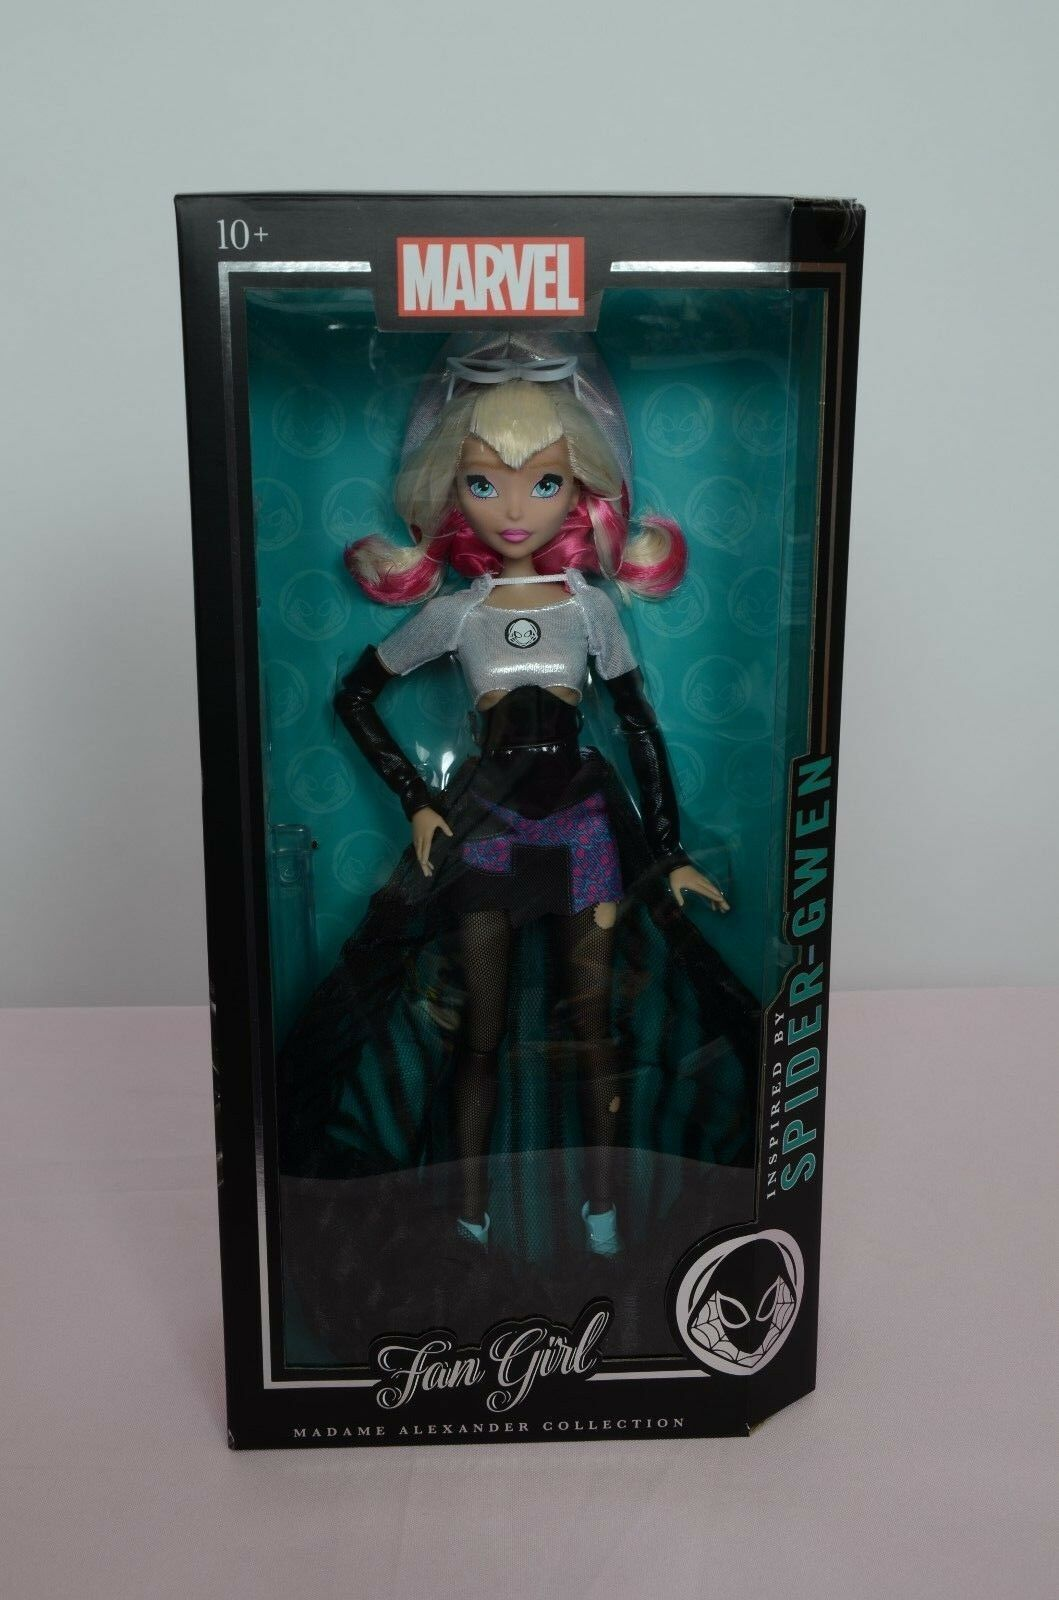 Marvel Fan Girl Spider Gwen Doll Madame Alexander Collection New